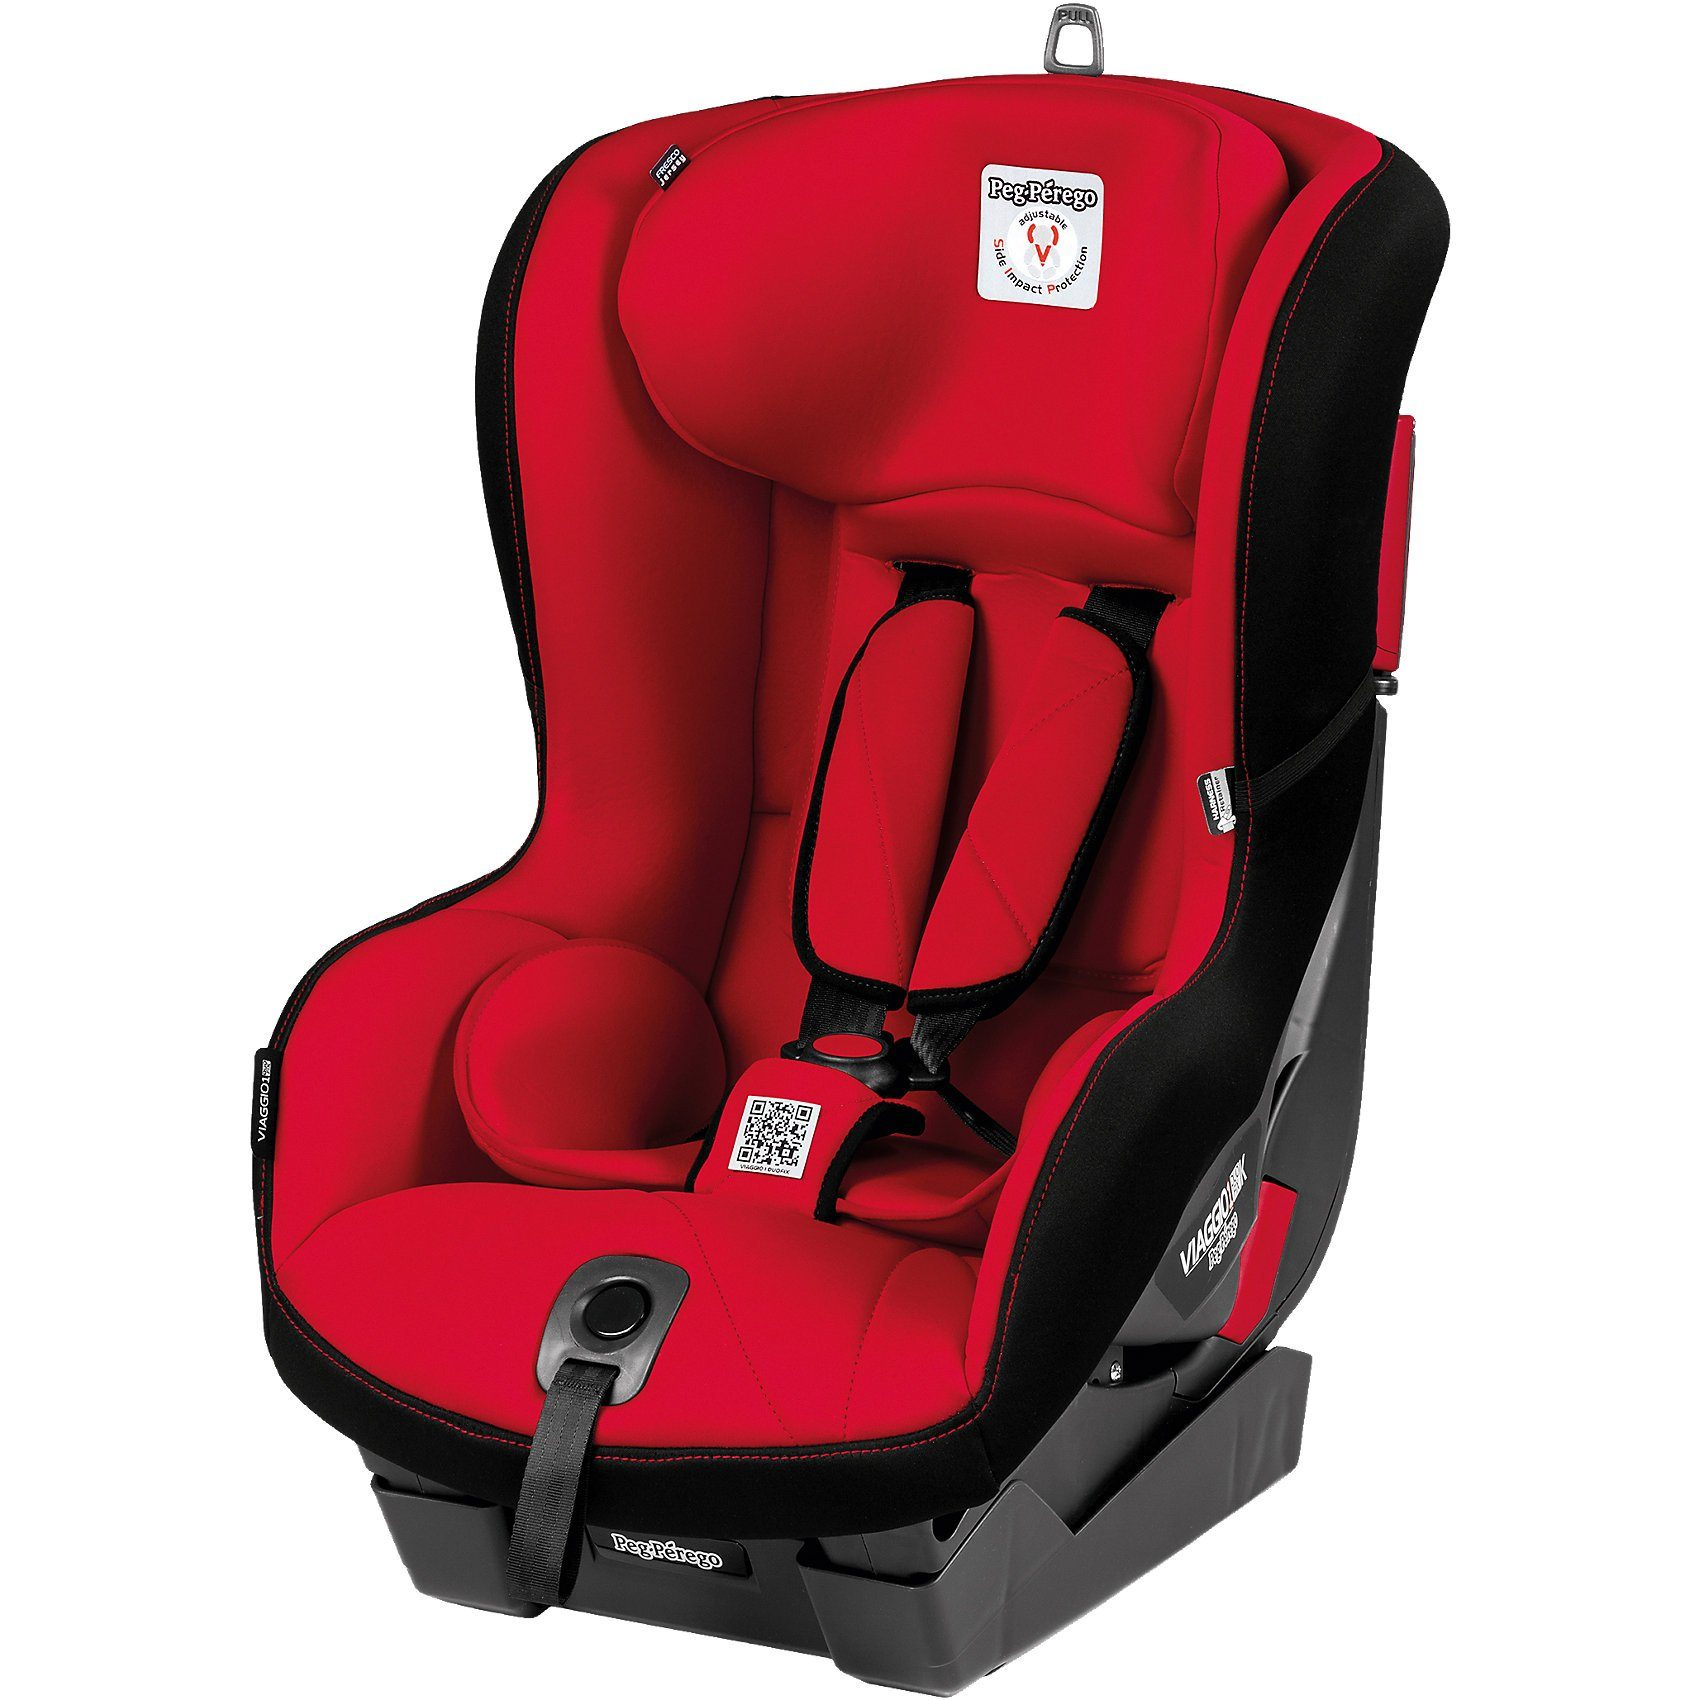 Peg Perego Auto-Kindersitz Viaggio1 Duo-Fix K, Rouge, 2015